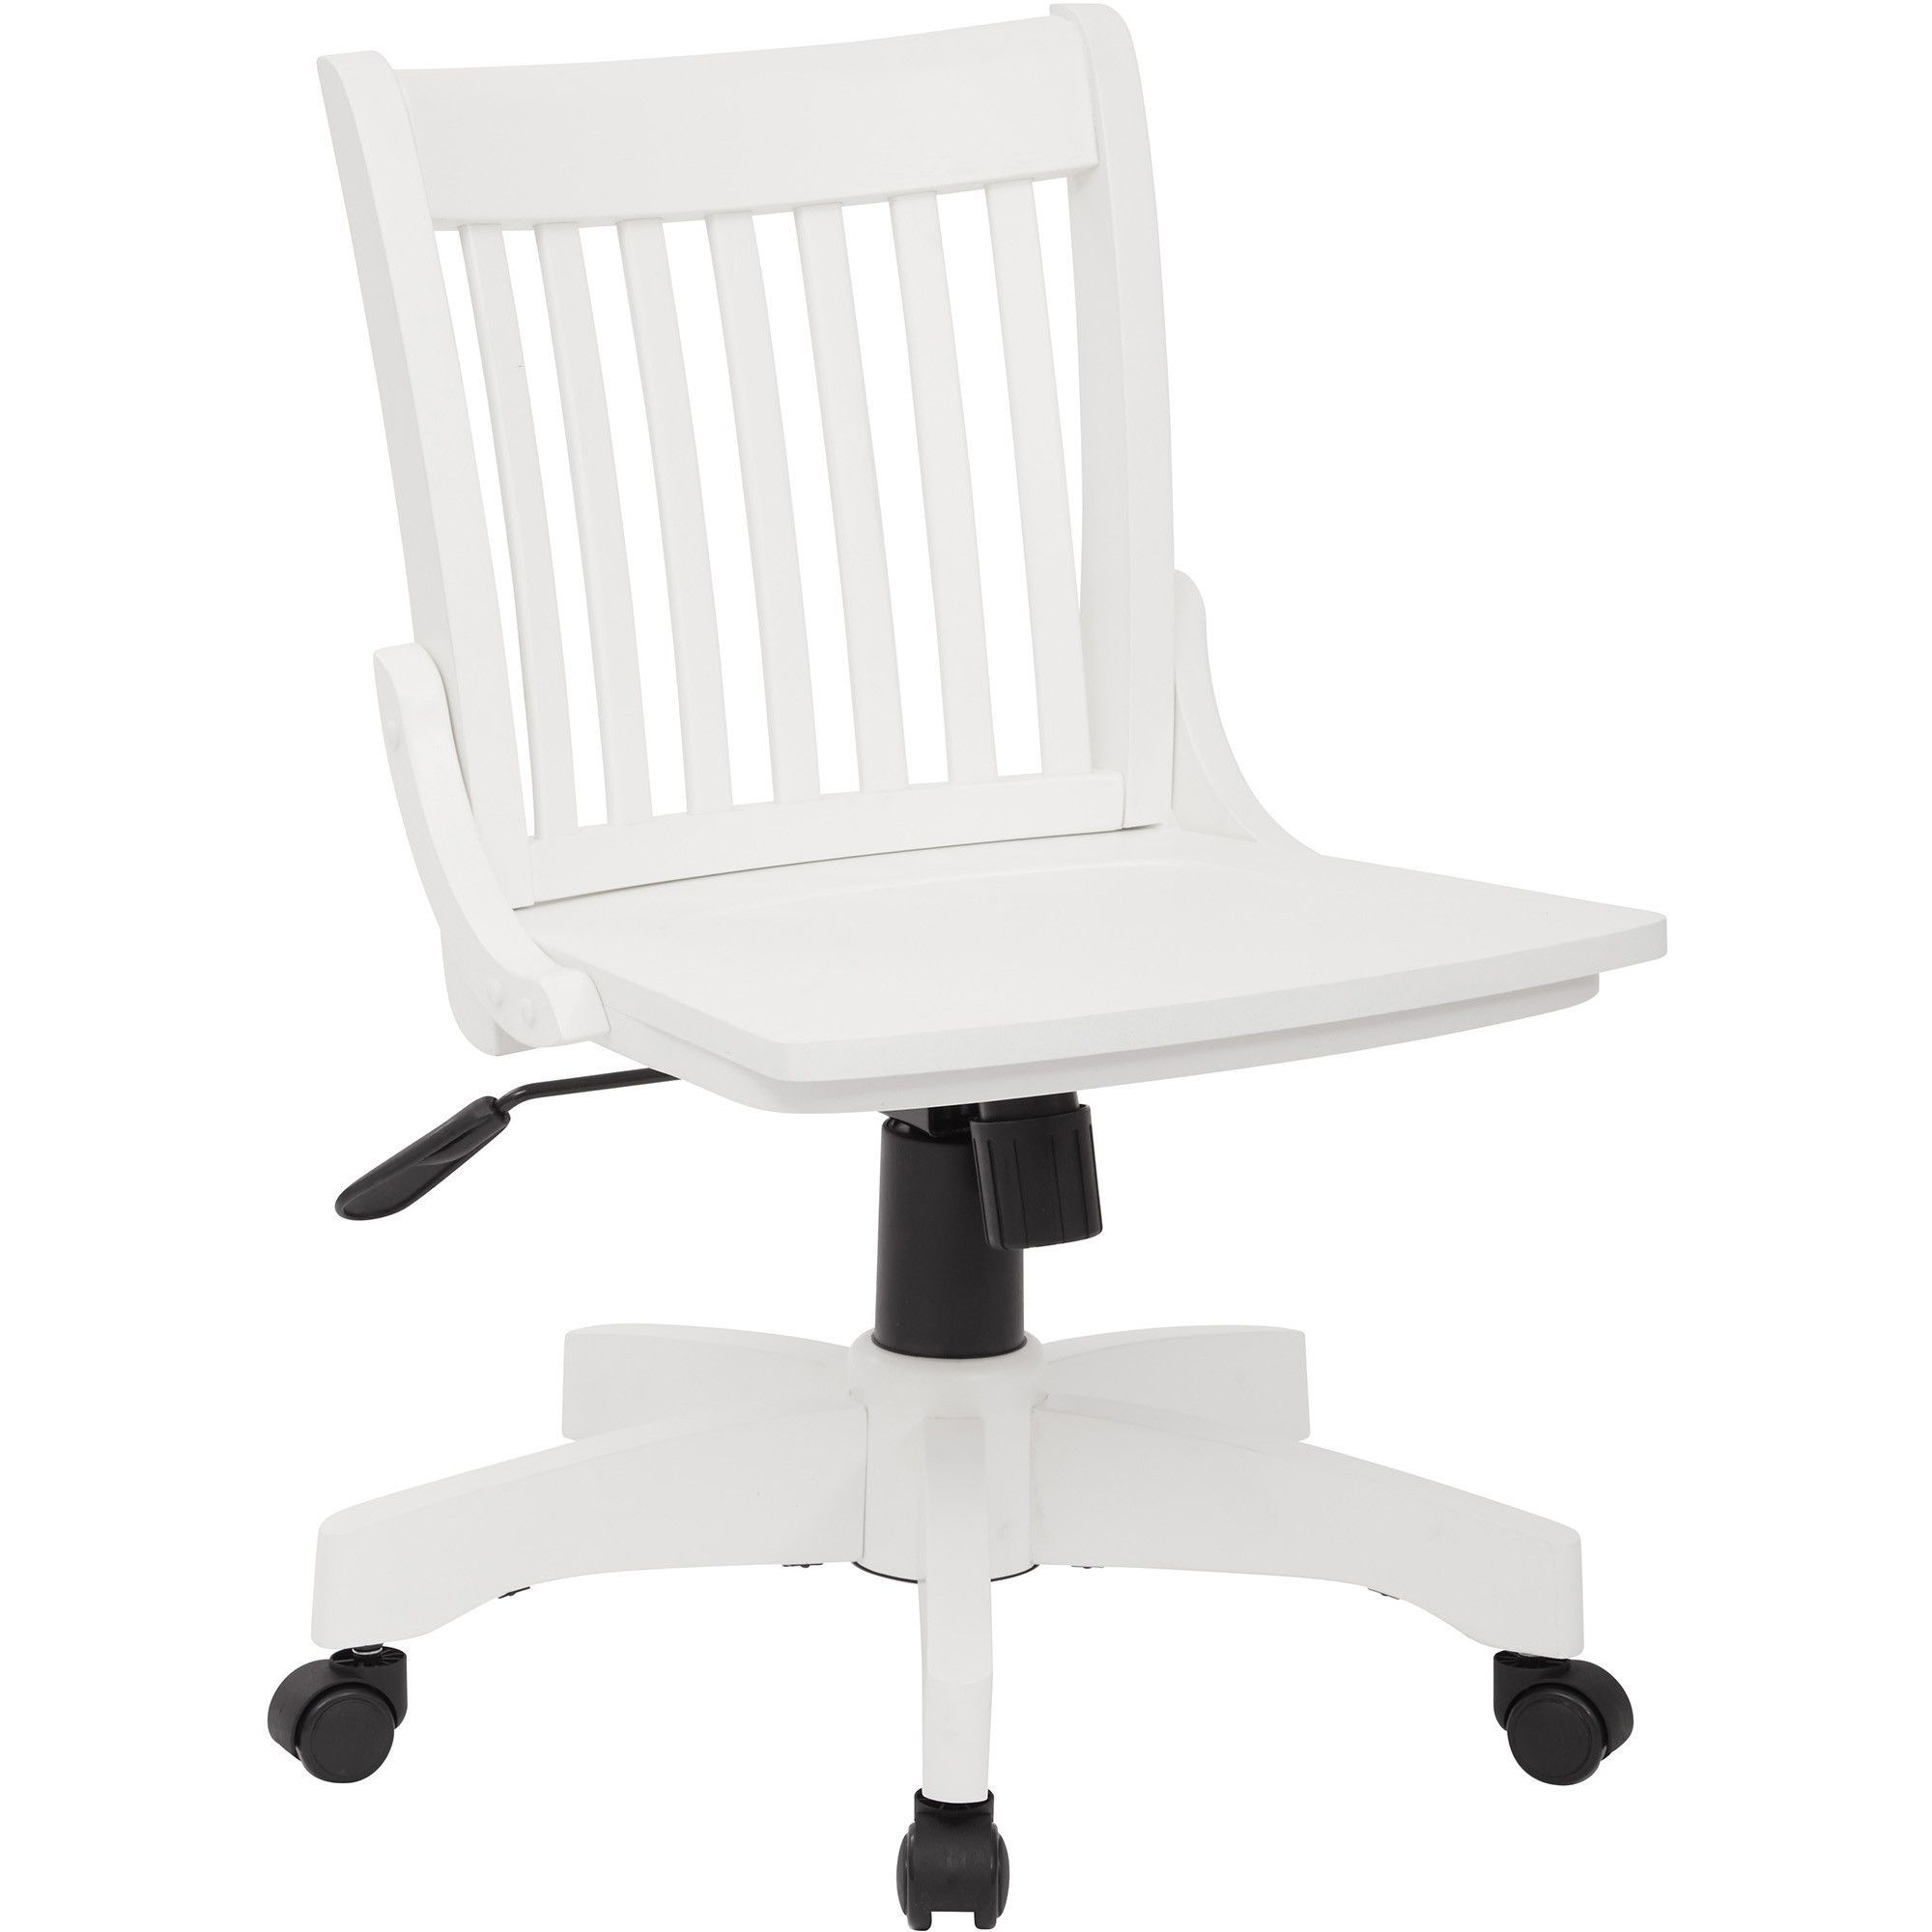 OSP Deluxe Armless Wood Bankers Chair With Wood Seat, White